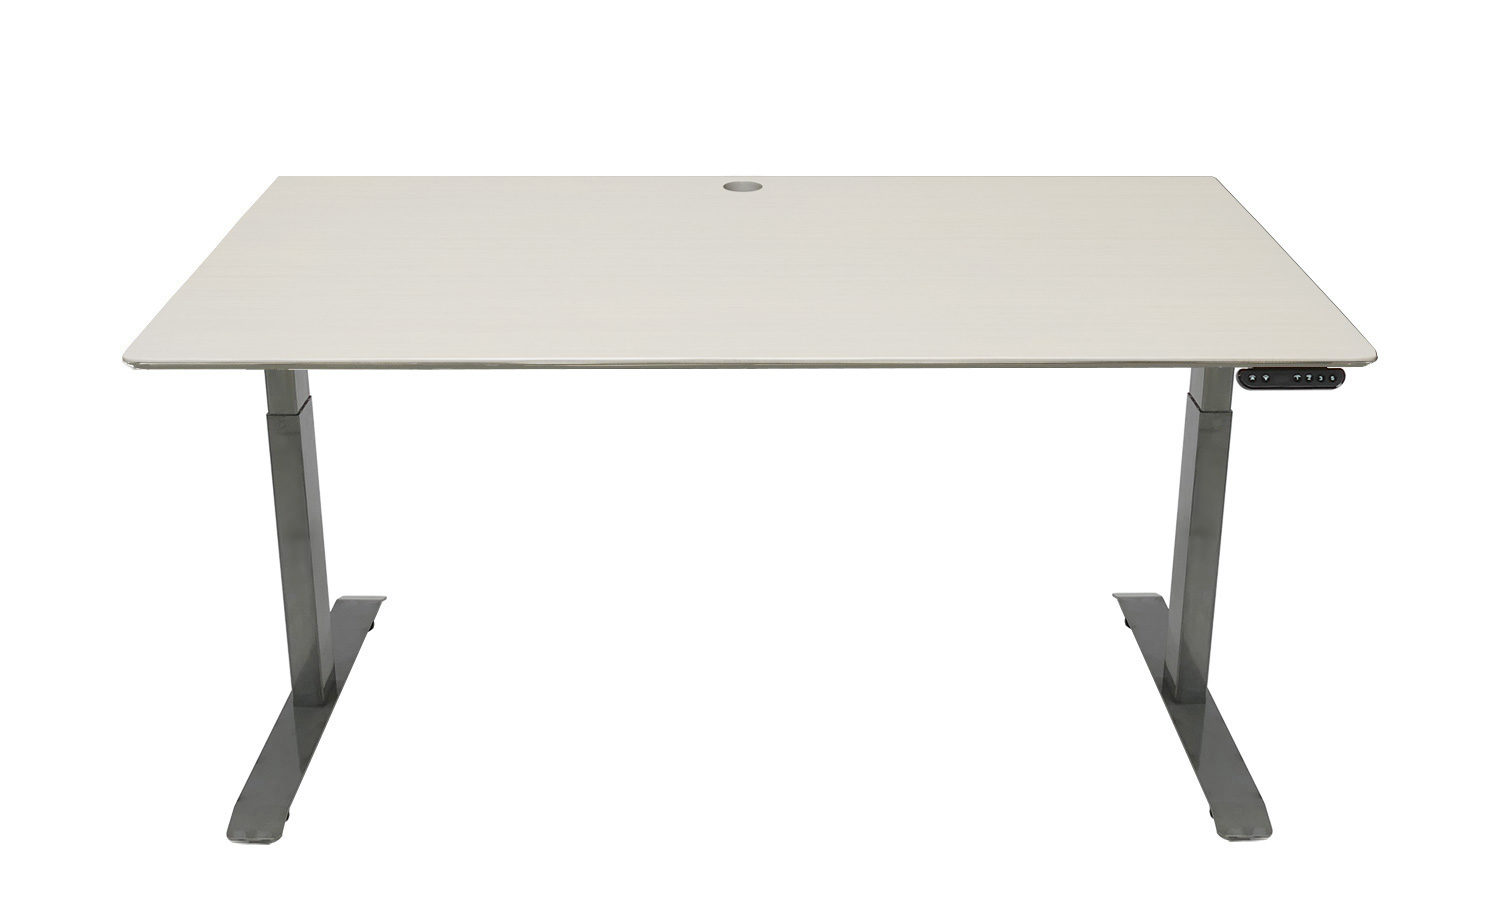 Standing Desk: 1500x800 - Whitewash Bamboo - Industrial Steel Frame